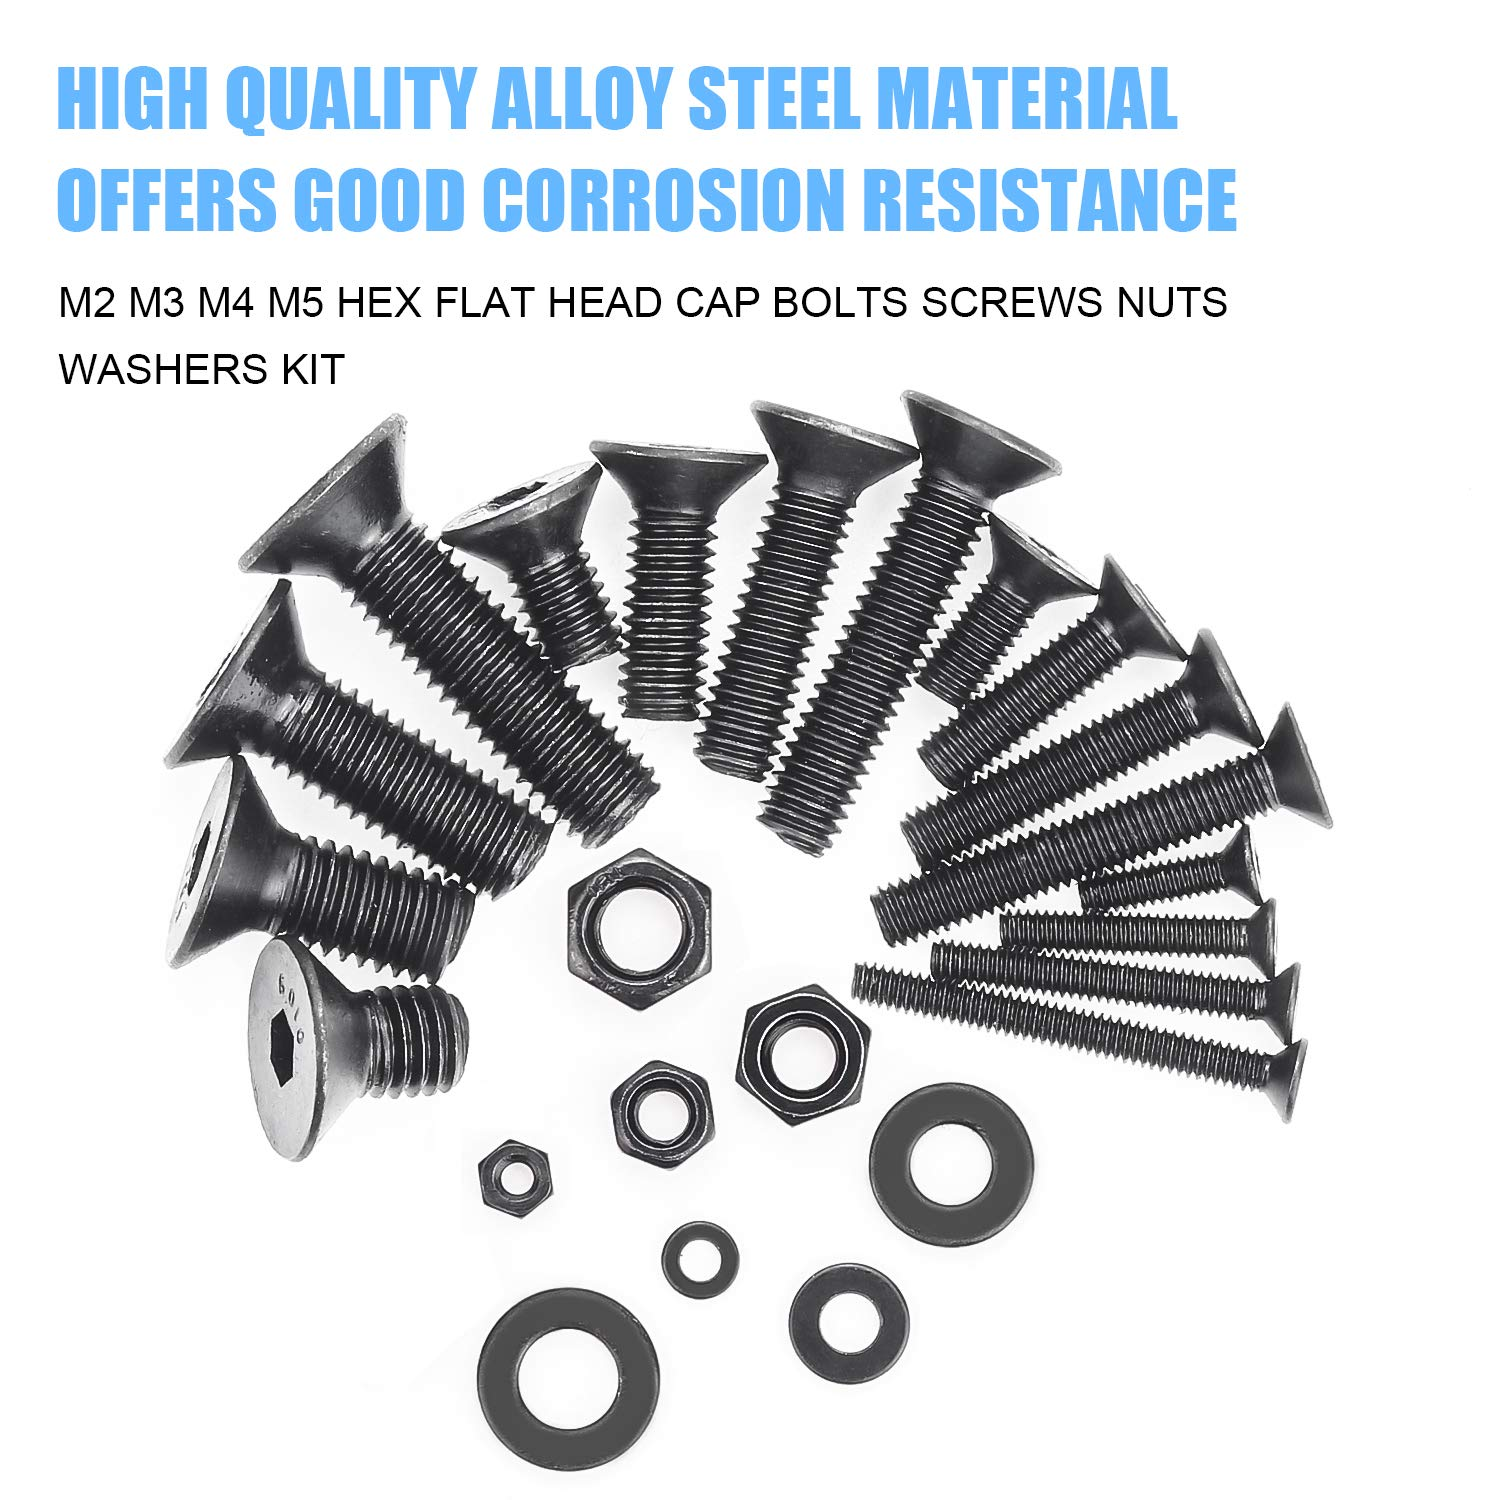 DYWISHKEY 1220 Pieces M2 M3 M4 M5 10.9 Grade Alloy Steel Hex Flat Head Cap Bolts Nuts Washers Assortment Kit with Hex Wrenches